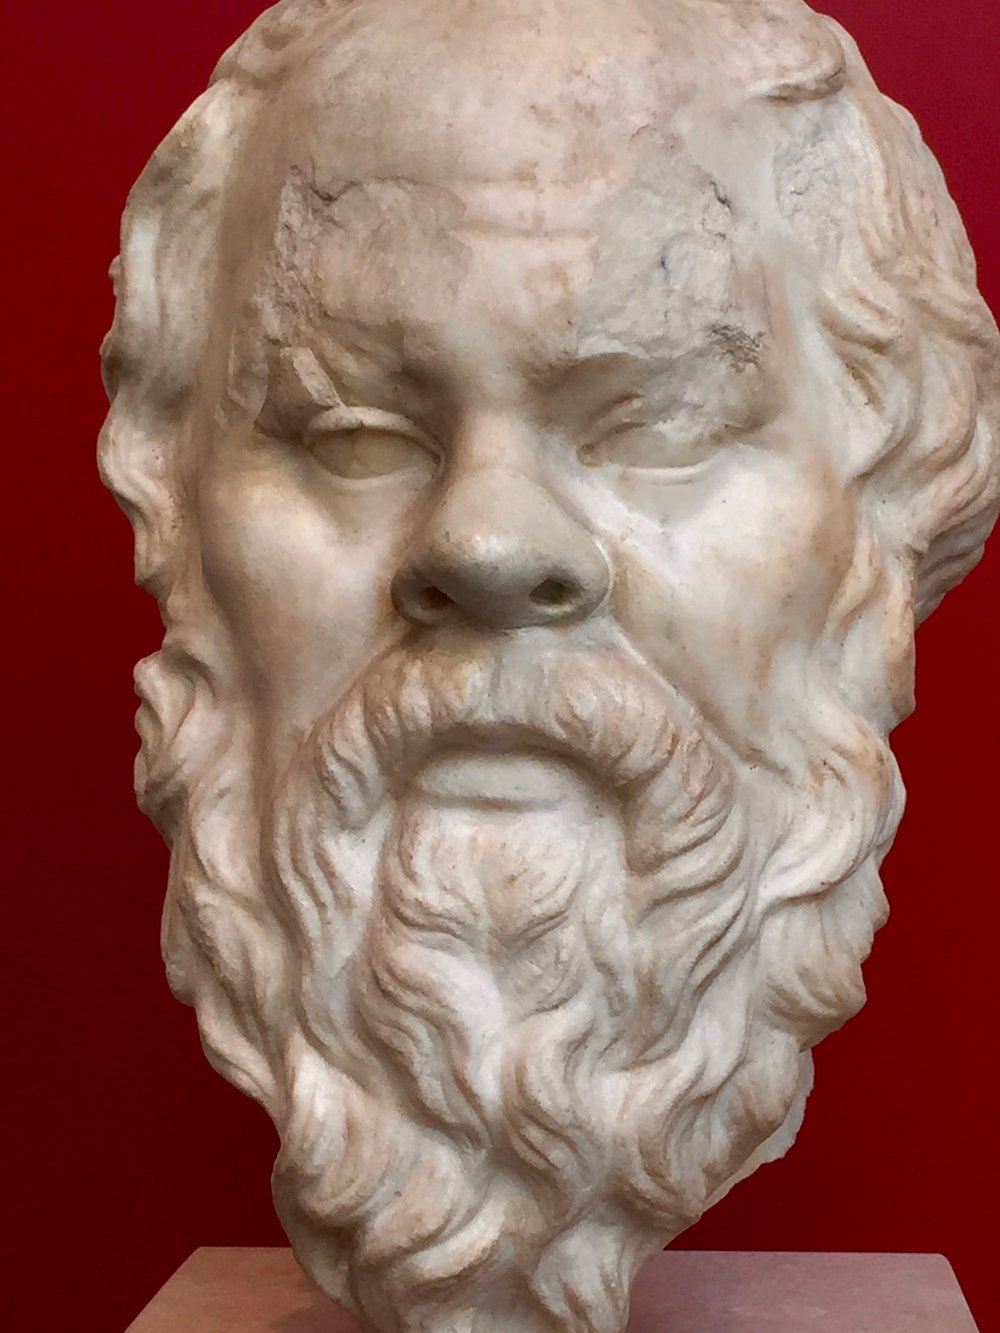 "Socrates nearly always features in syllogism examples, and for good reason. He was willing to die by hemlock poisoning rather than be banished from his beloved Athens for the crime of fostering subversive critical thinking in the public arena. He claimed no original knowledge and left no writings of his own. His wisdom lives on because his life and work were championed in the works of Plato. Socrates declares (in Plato's Theaetetus: 150) that ""god constrains me to serve as midwife, but has debarred me from giving birth.""  Socrates' maieutic method (mid-wife-as-opposed-to-didact) is, of course, the watchword for effective, constructivist TOK teaching!"